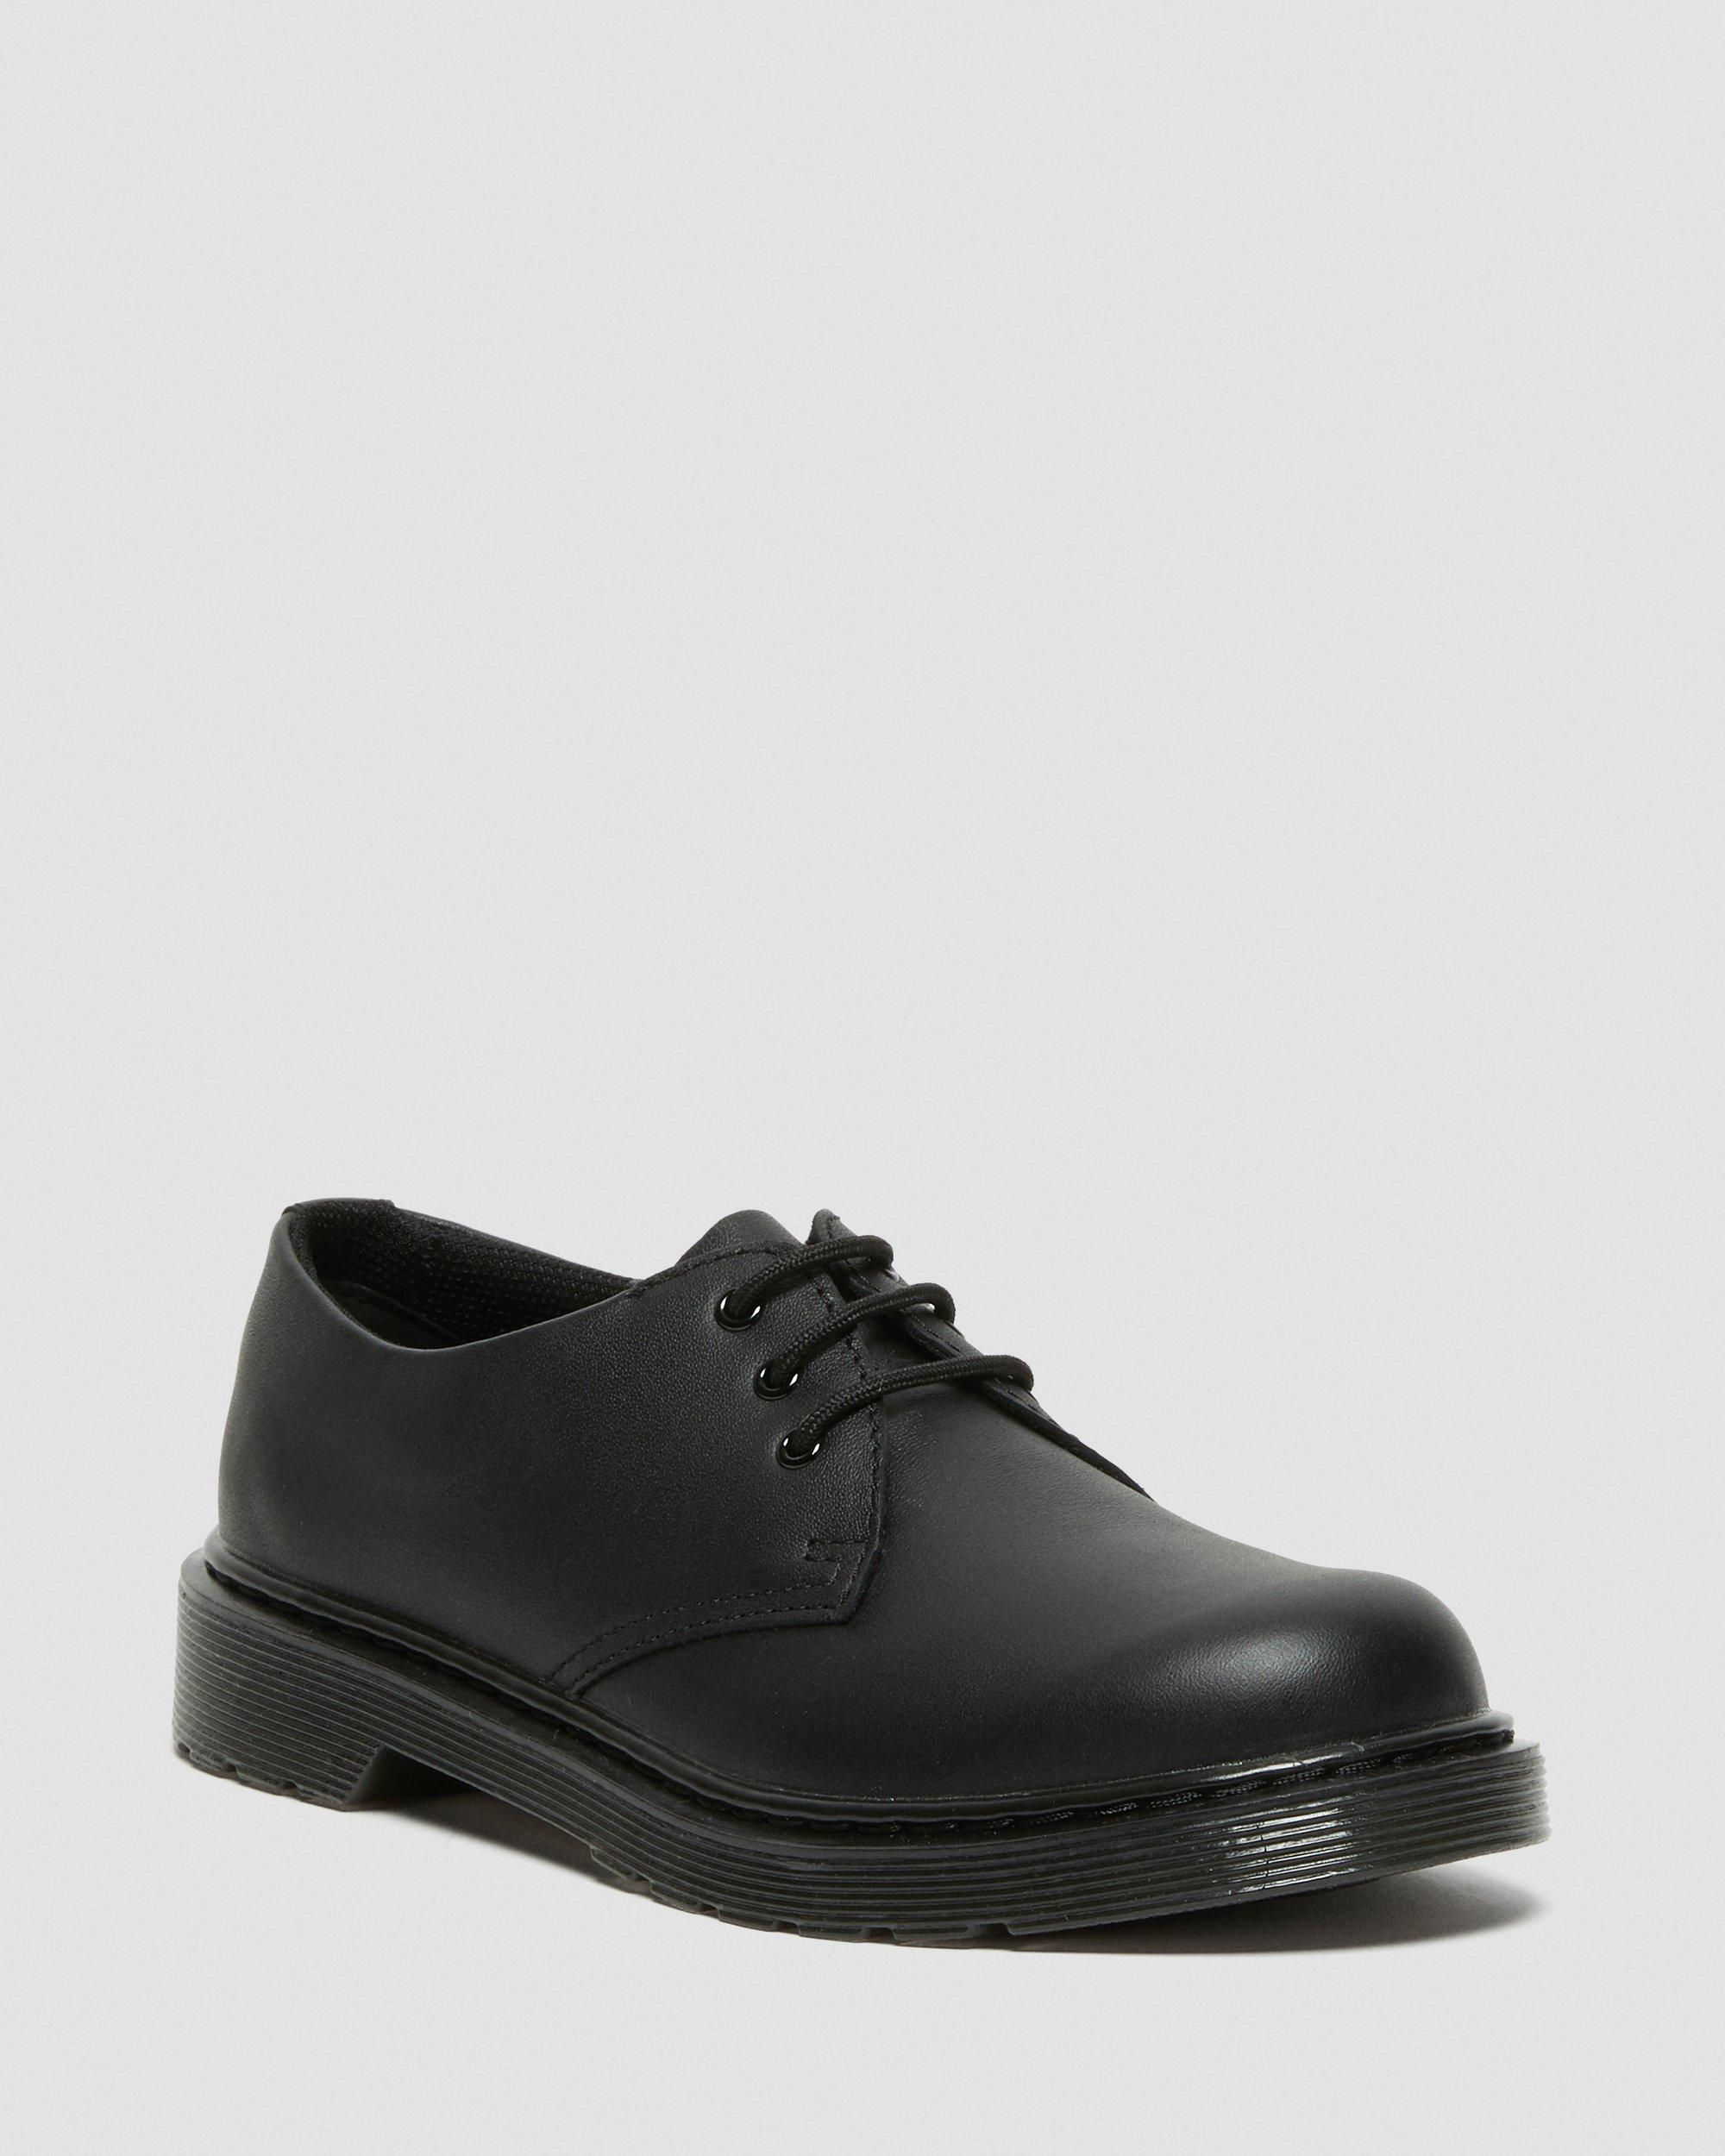 YOUTH 1461 MONO SOFTY T LEATHER SHOES